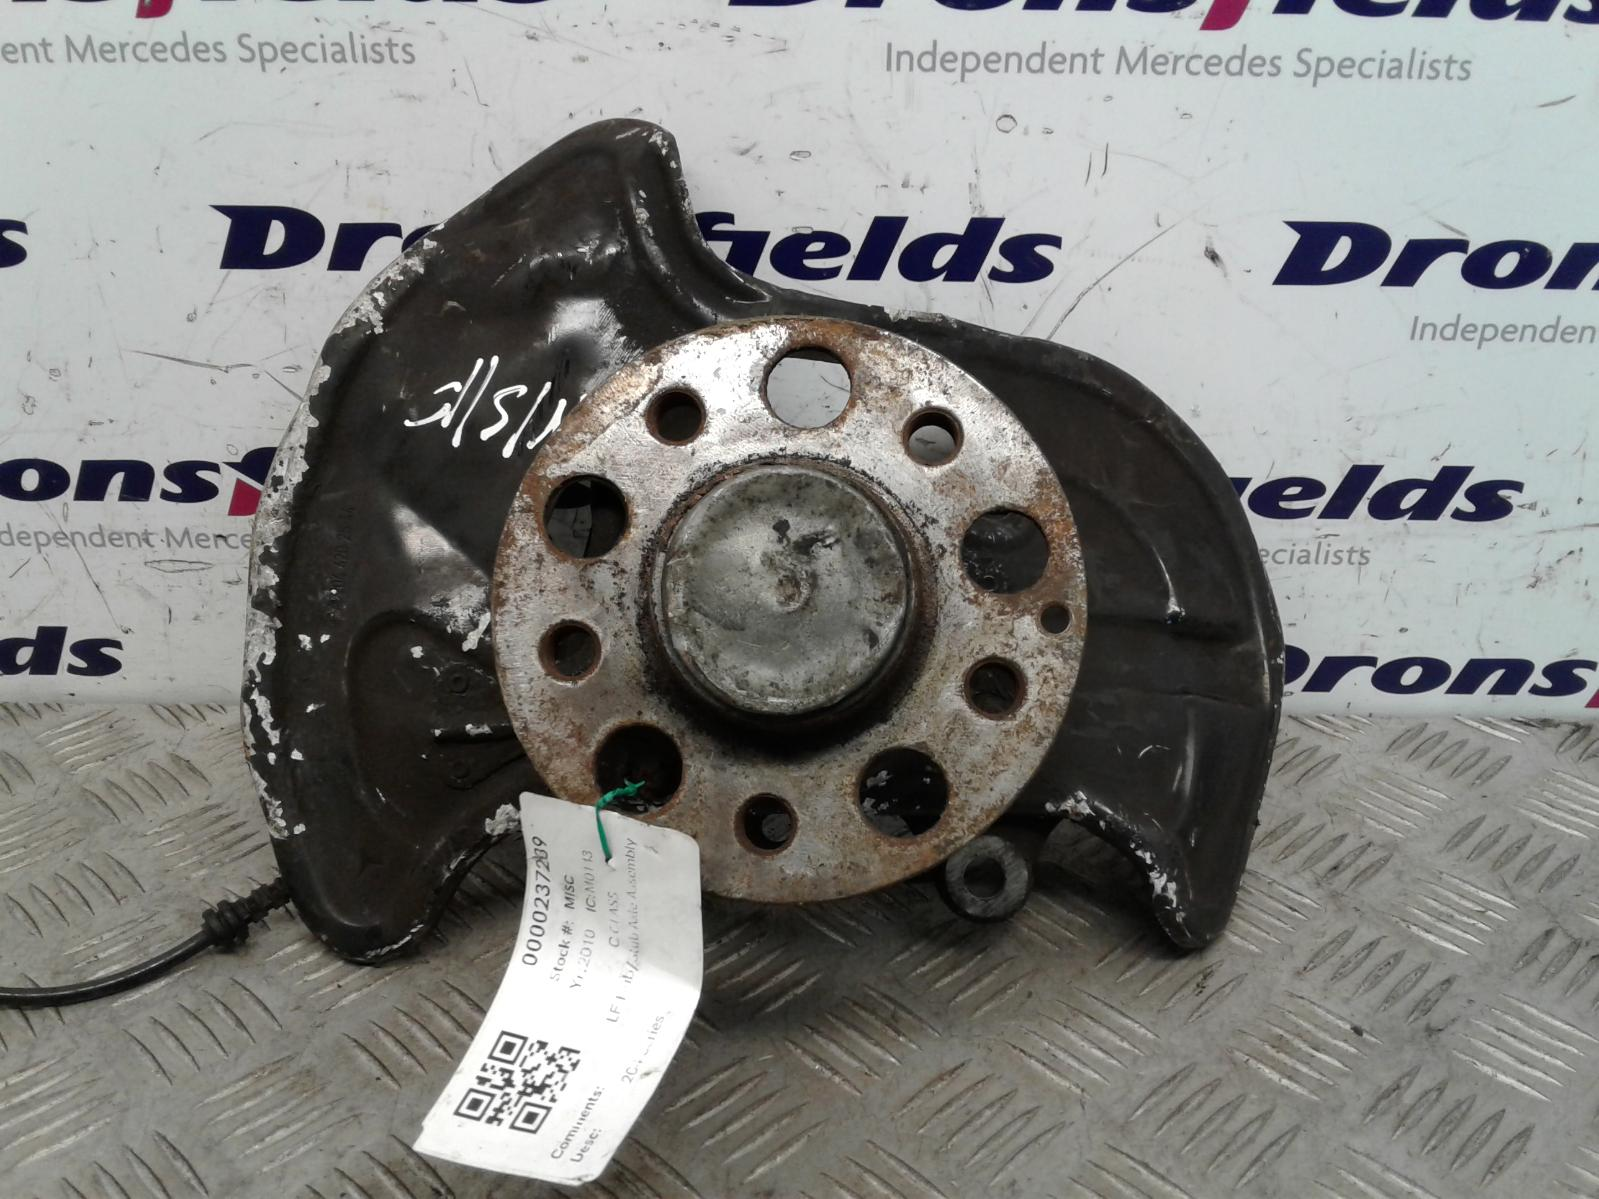 View Auto part LF Hub/Stub Axle Assembly Mercedes C Class 2010